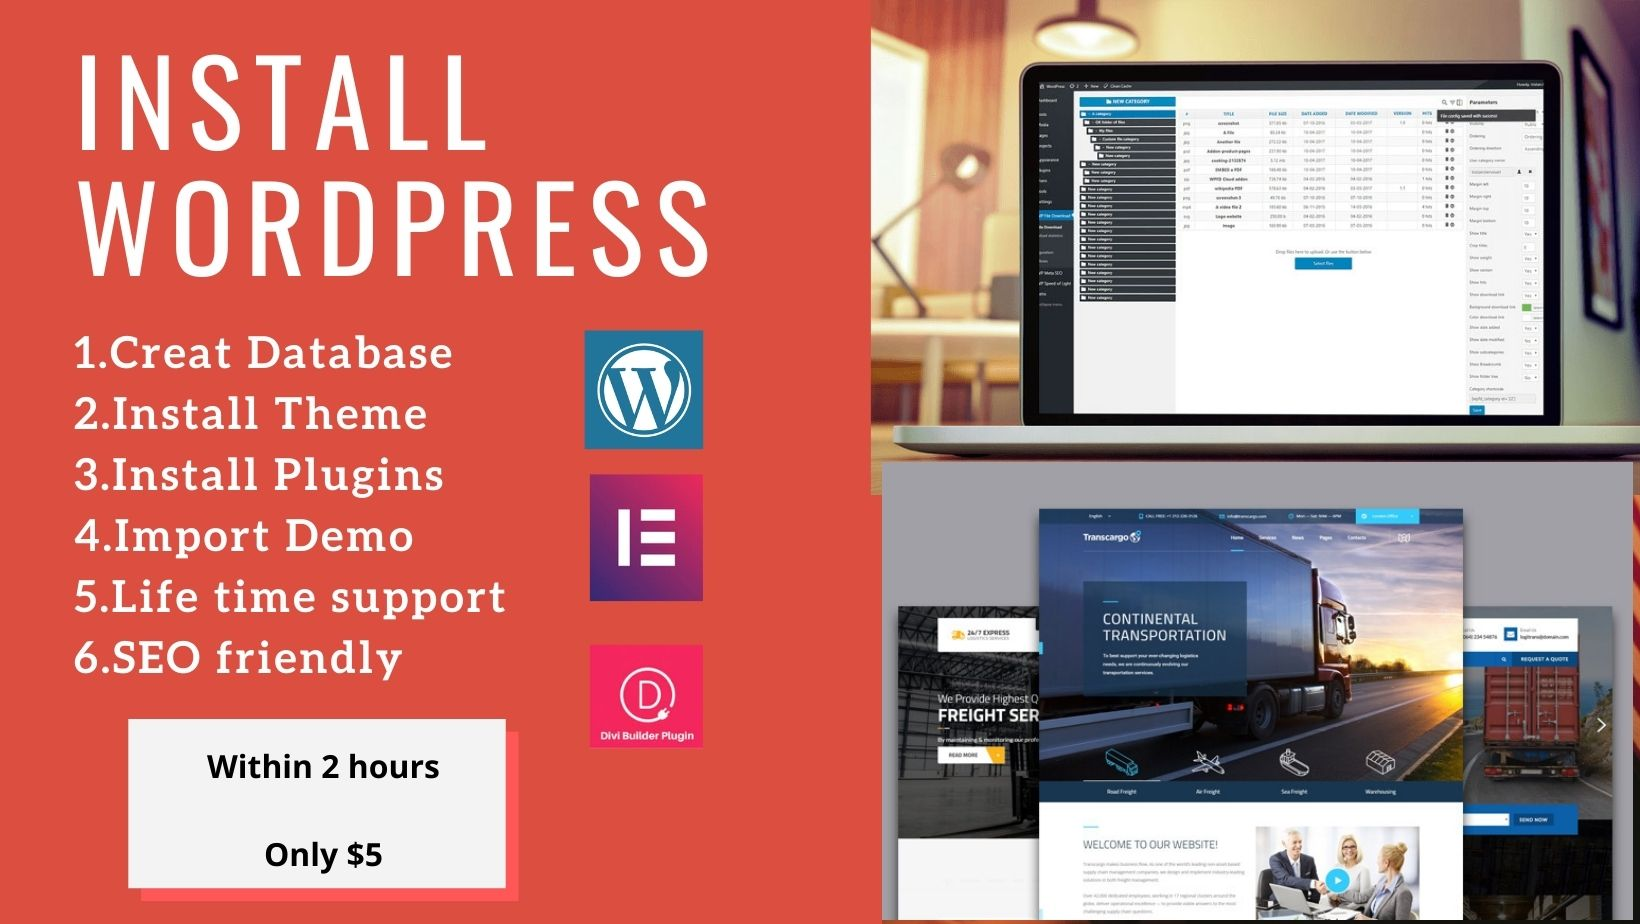 I will install wordpress, plugin, setup theme and creat database.